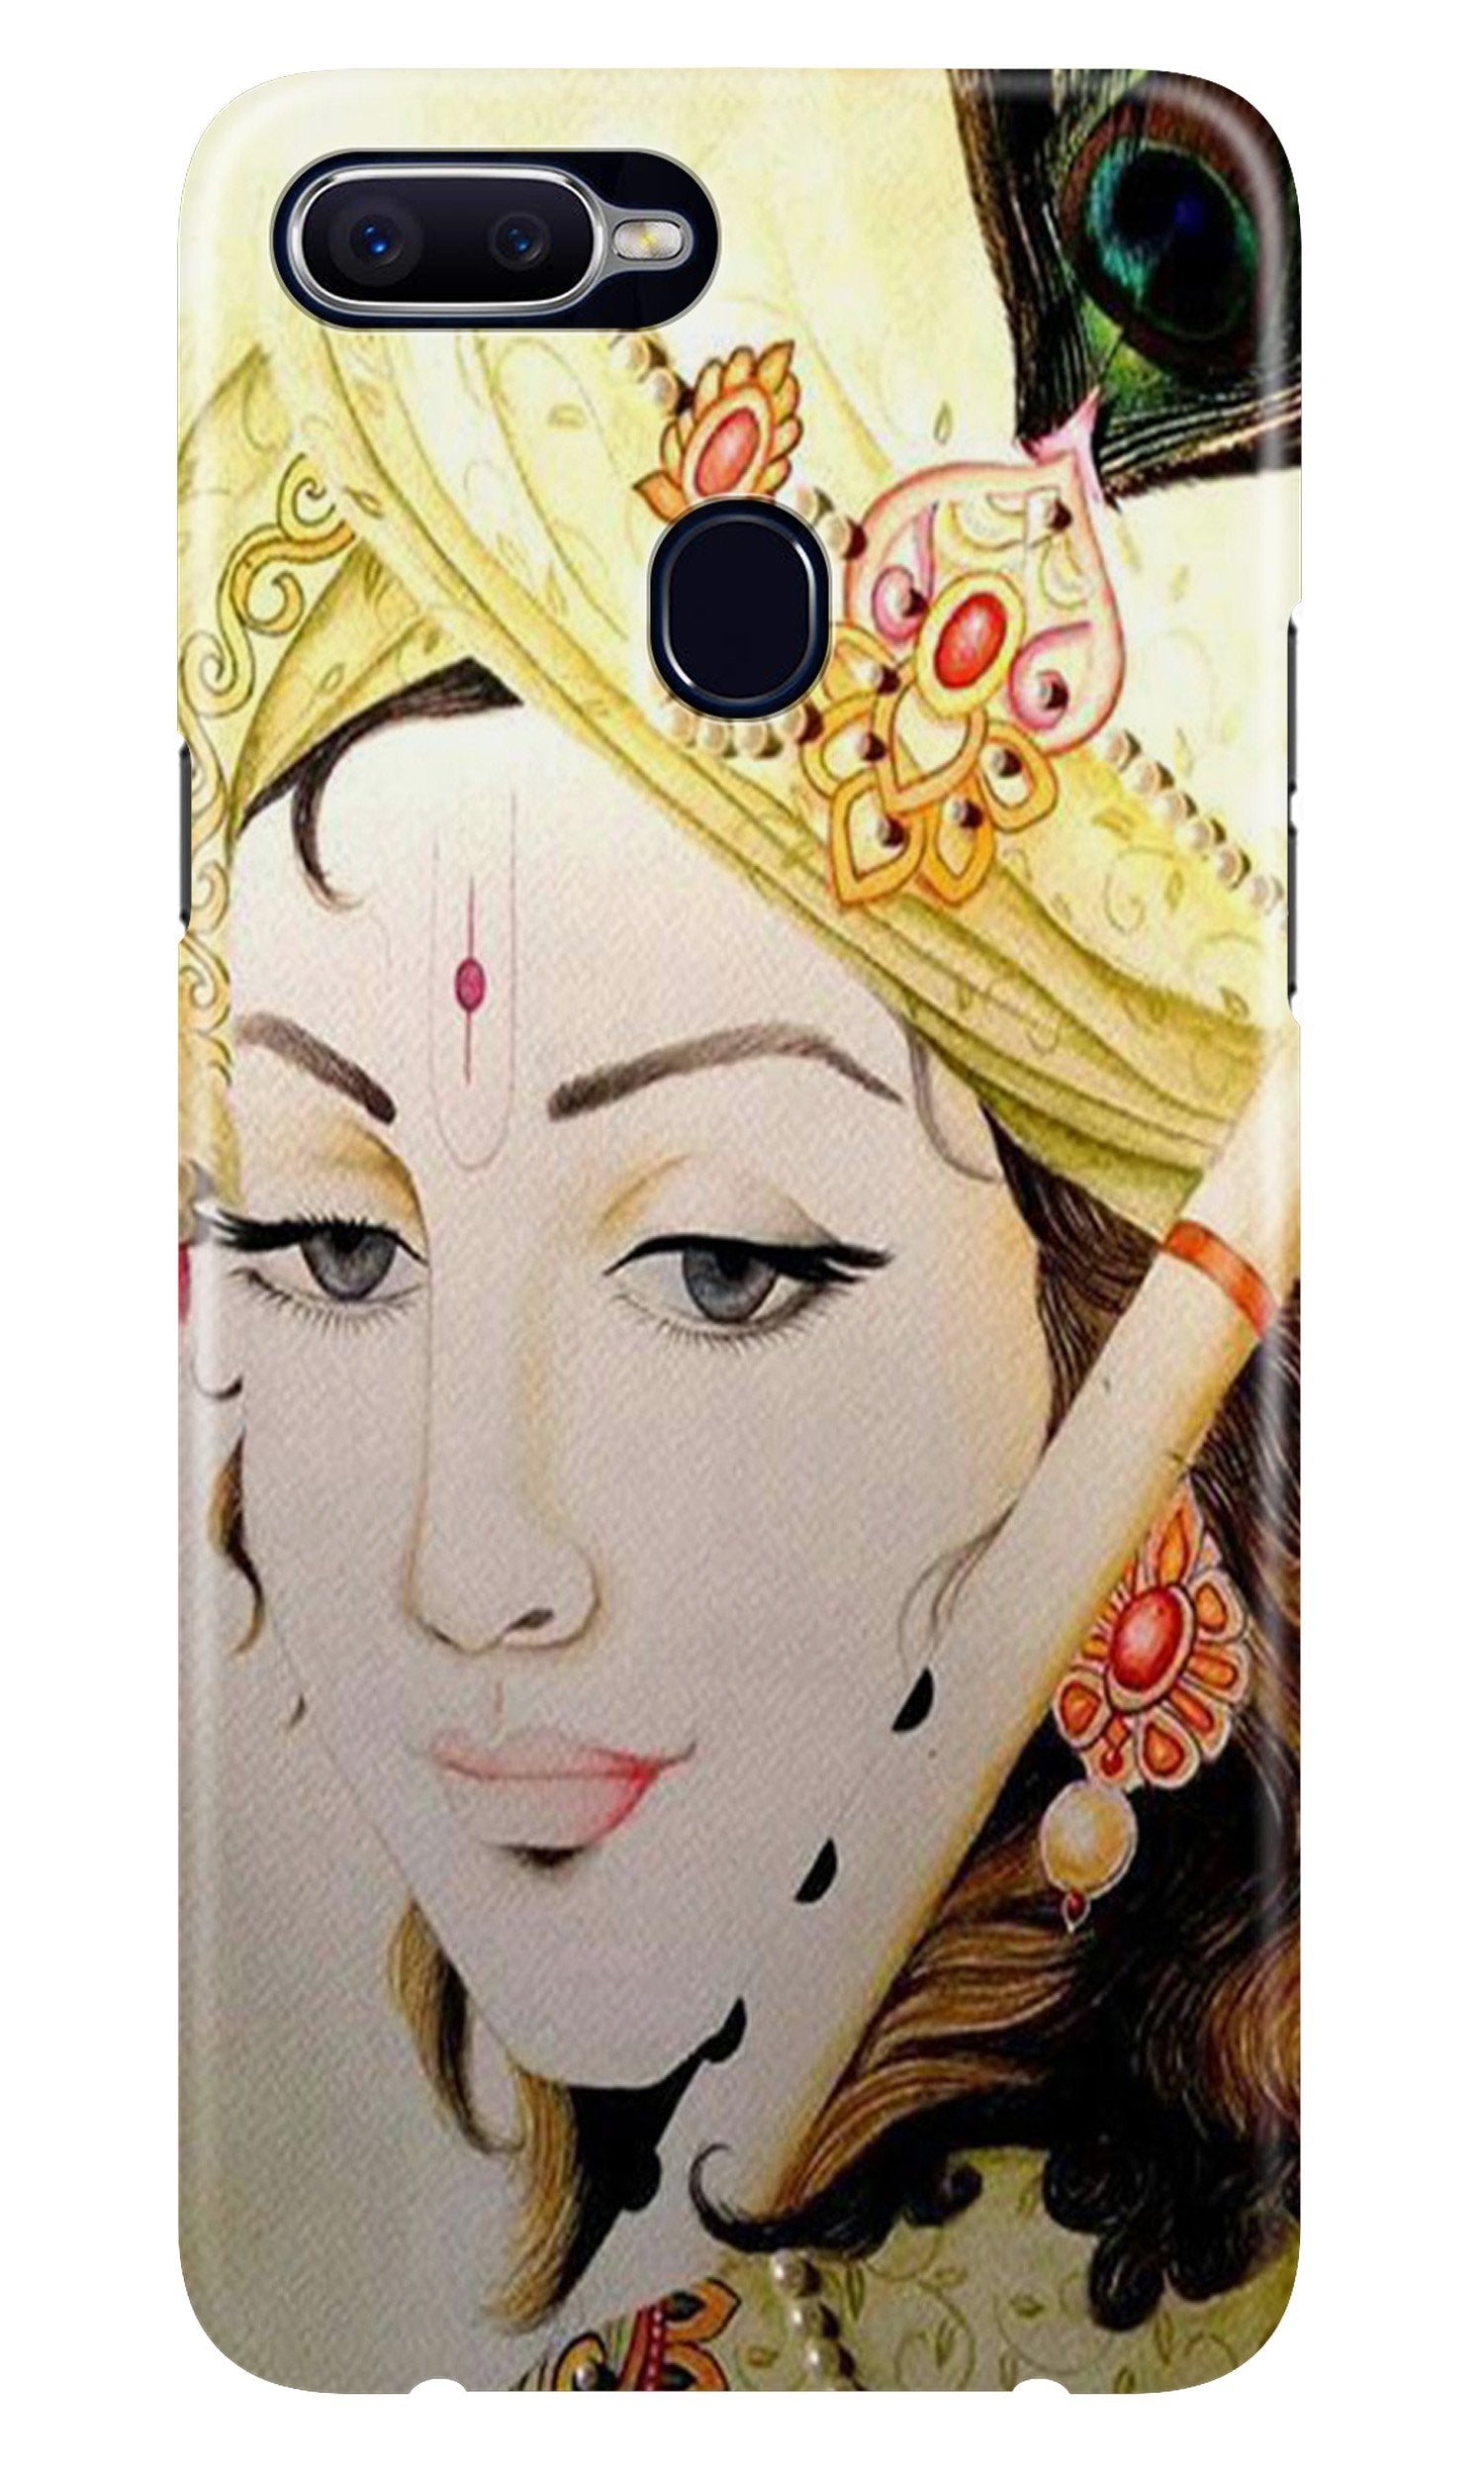 Krishna Case for Oppo A7 (Design No. 291)